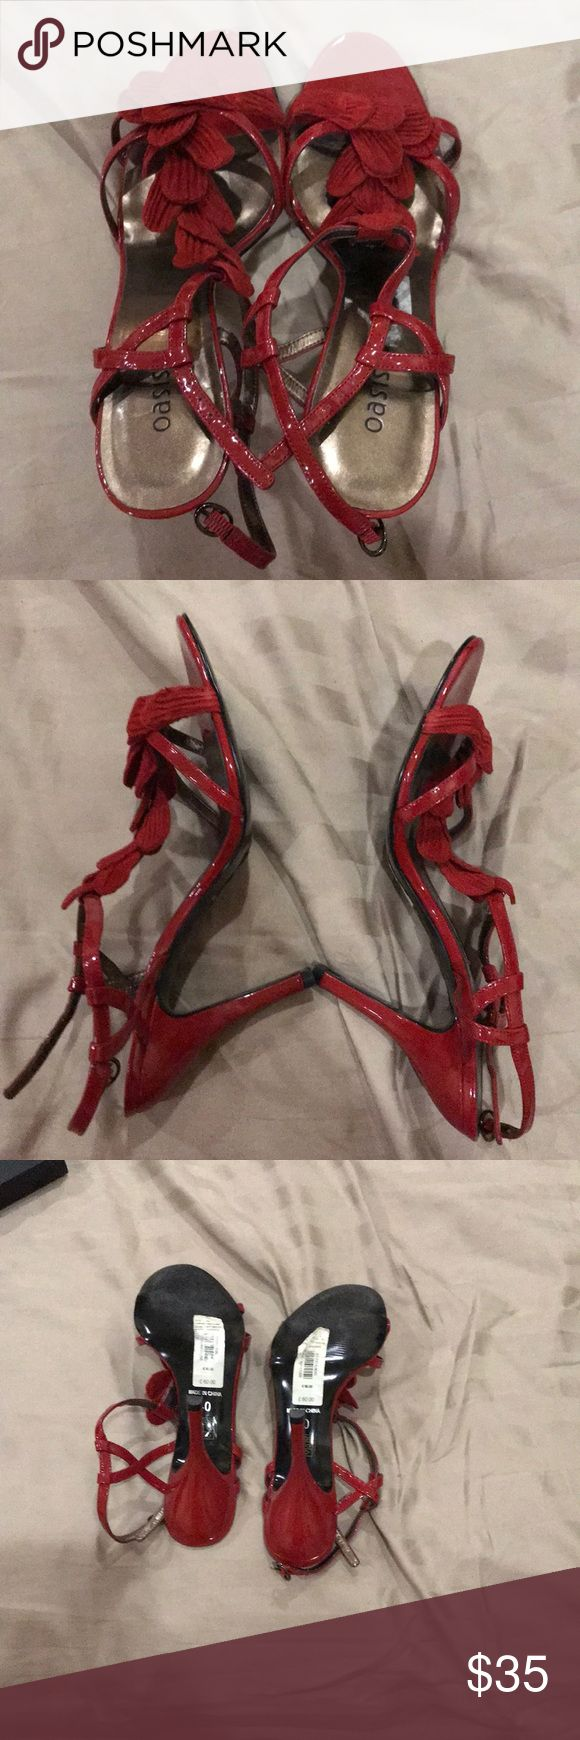 Red heeled sandals Like new, UK size 40, heel height is 3.5 inches Oasis Shoes Sandals